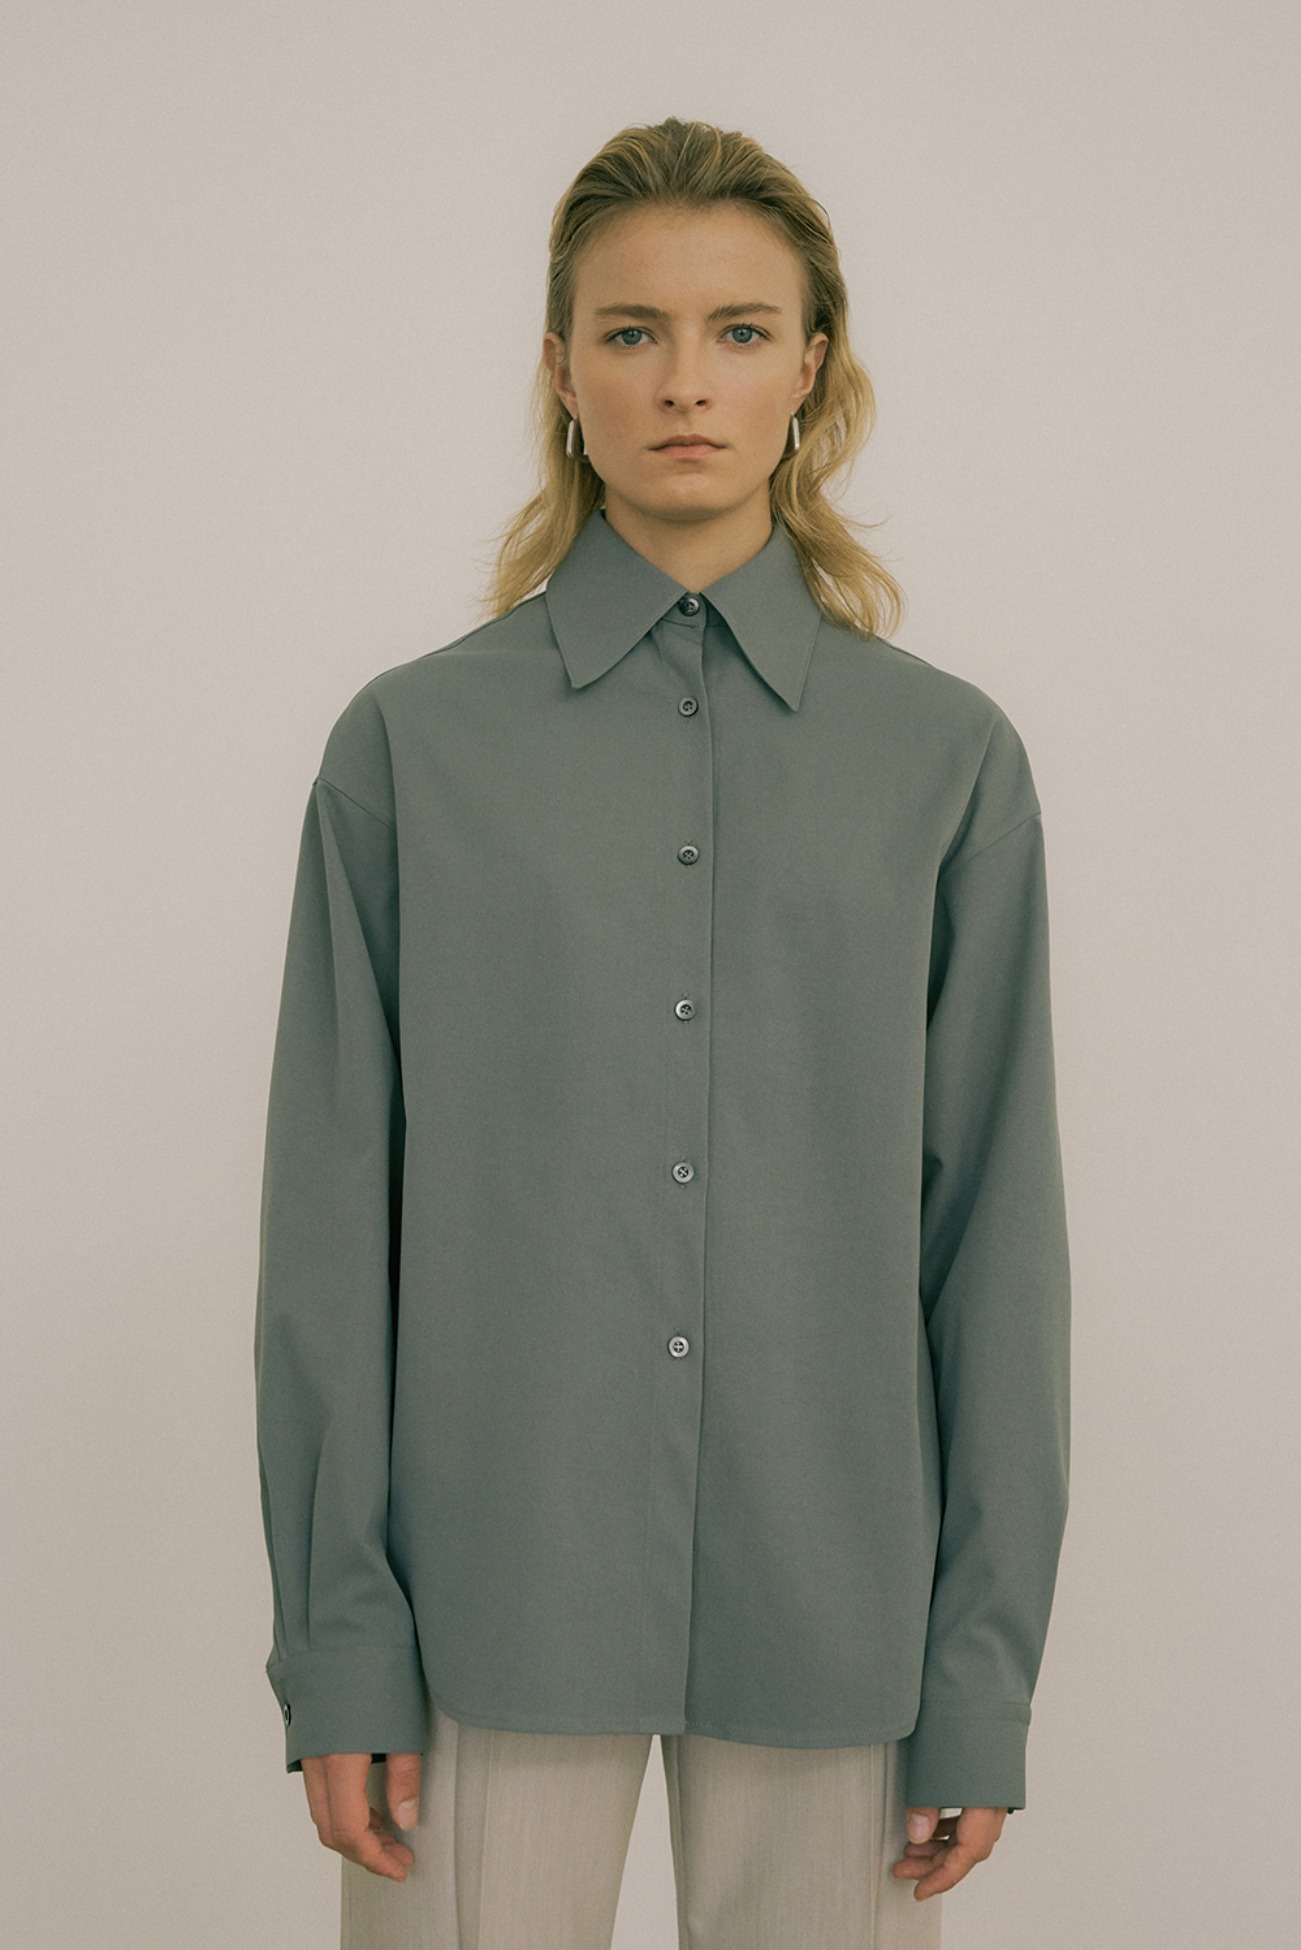 20 FW OVER-FIT DRY TEXTURE SHIRT